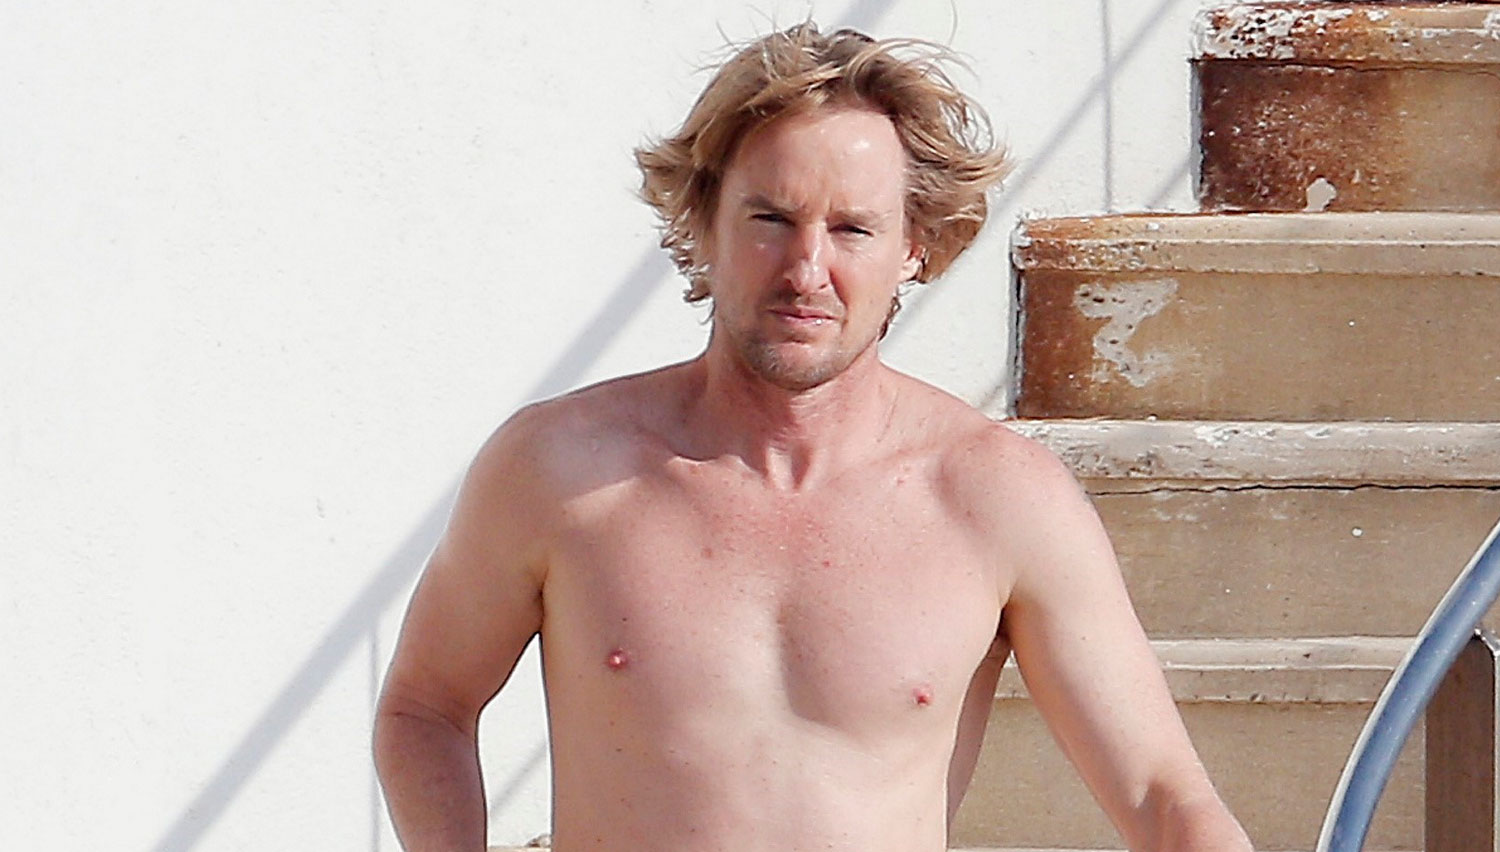 who is owen wilson dating now